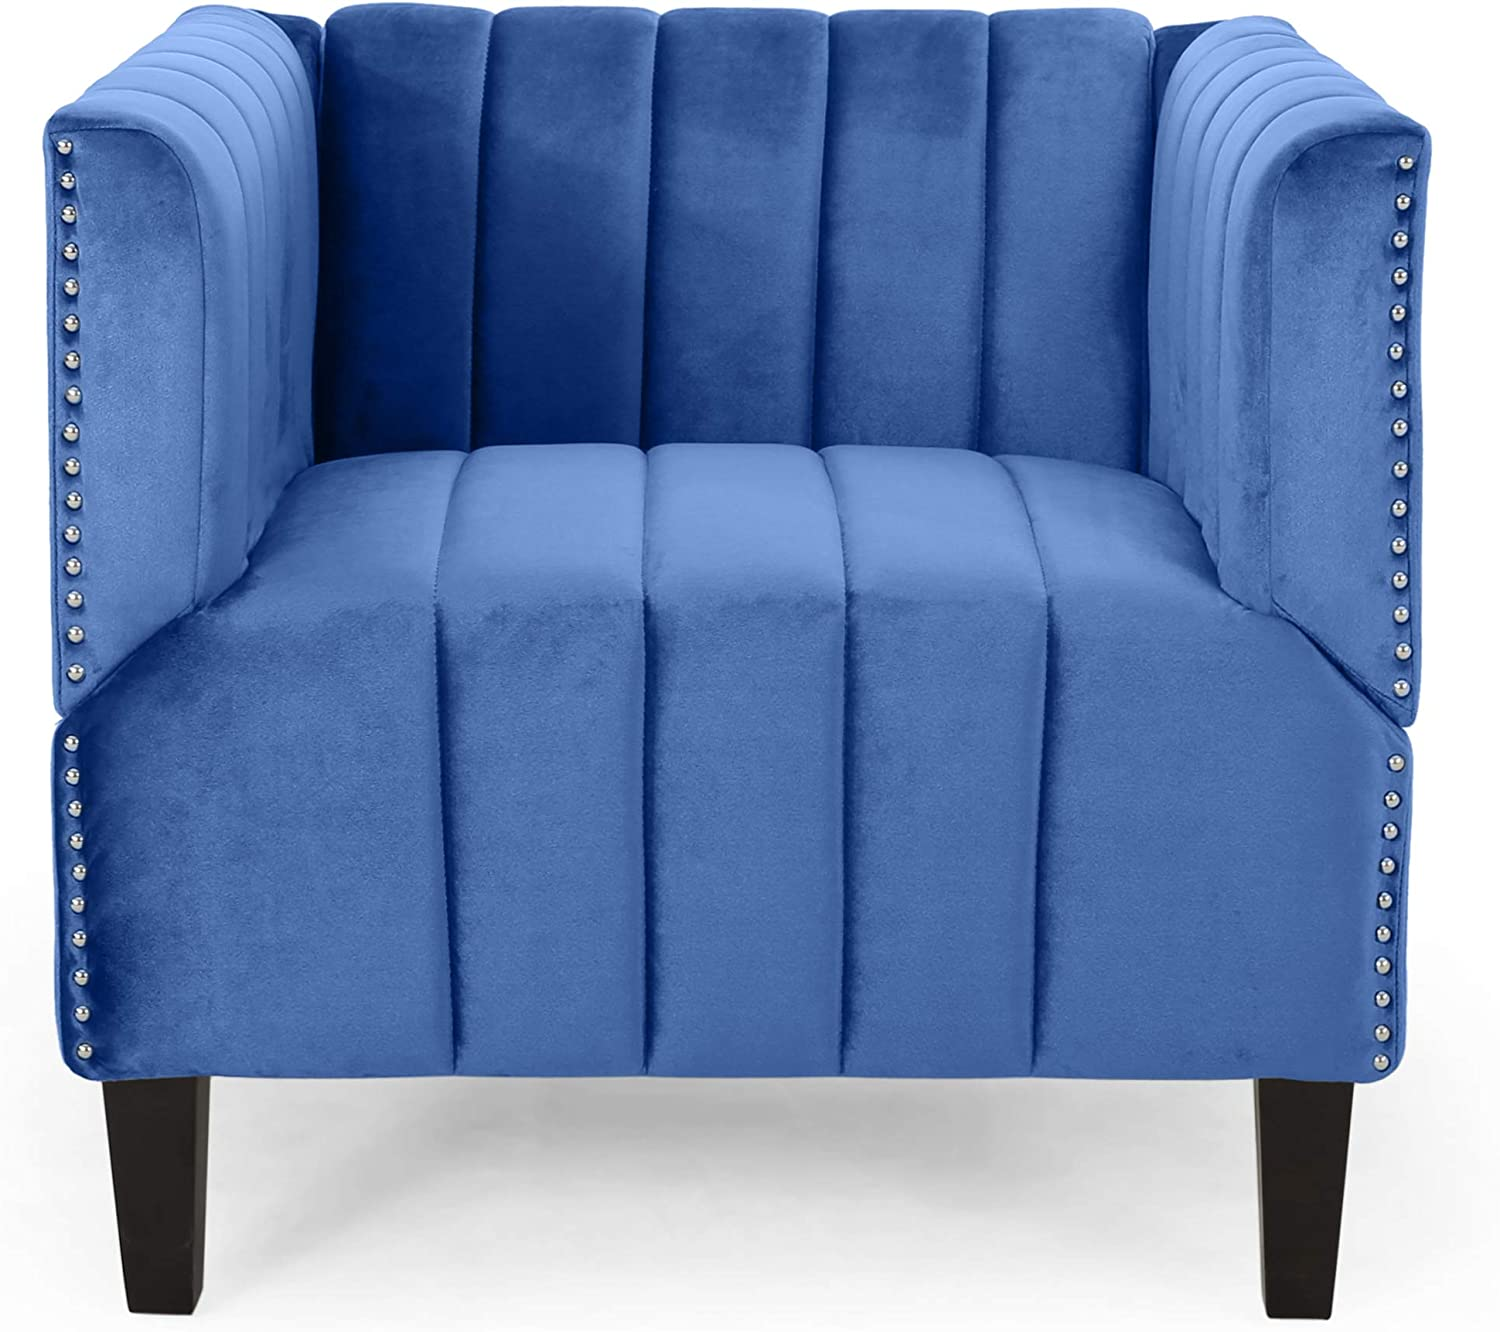 Christopher Knight Home Ferdinand Contemporary Channel Stitch Velvet Club Chair, Navy Blue, Dark Brown